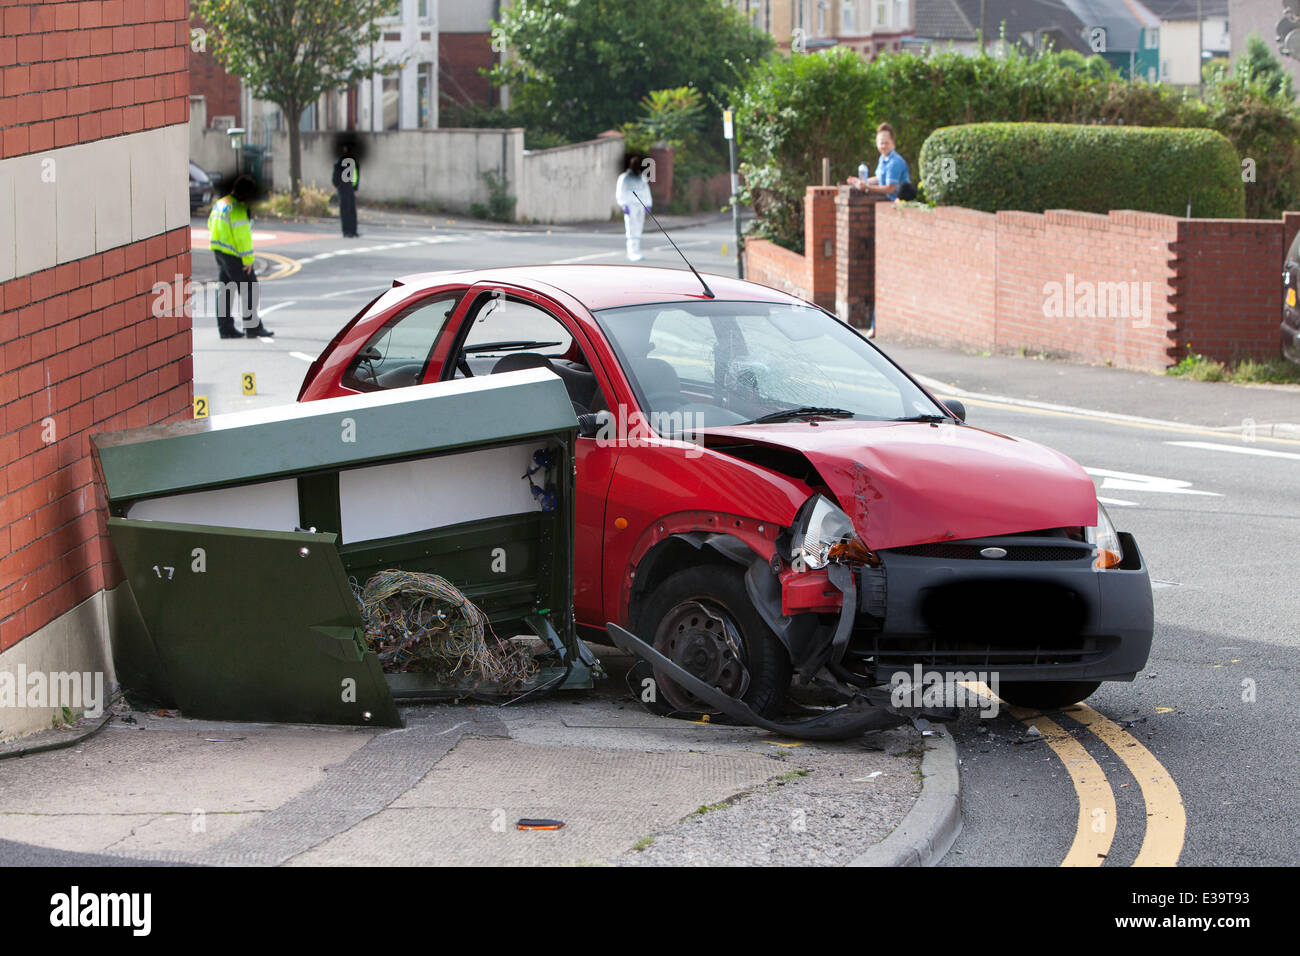 A Red Ford Ka Can Be Seen Crashed Into A Telecoms Cabinet And Three People Are Reportedly In Hospital After A Shooting Incident Near The Crosshands Hotel On